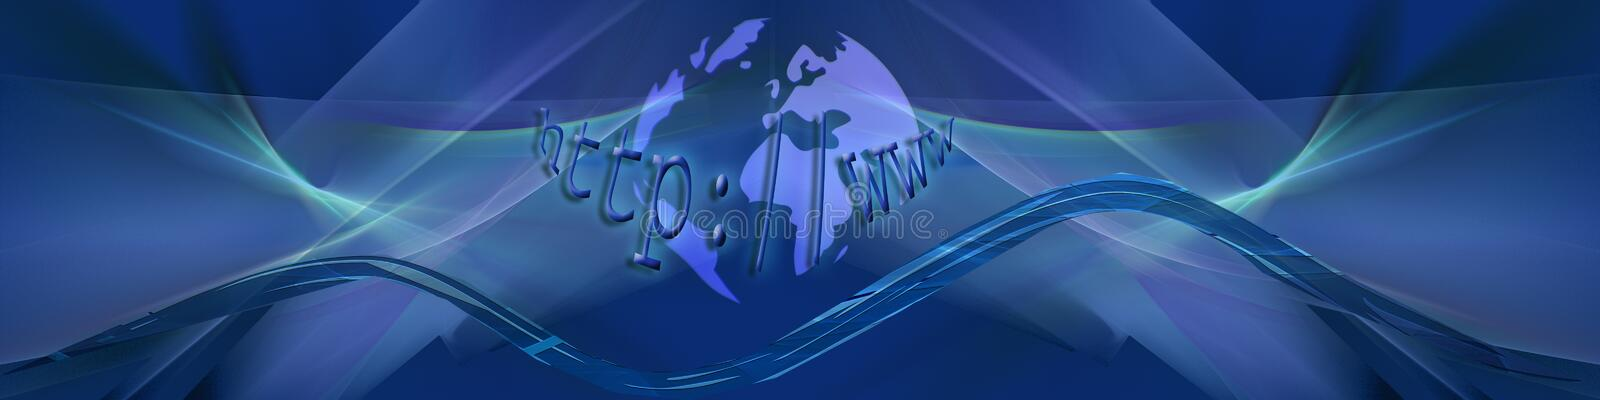 Blue Internet waves with planet. Banner / header with abstract waves in ocean colors and in the middle part our planet with text royalty free illustration